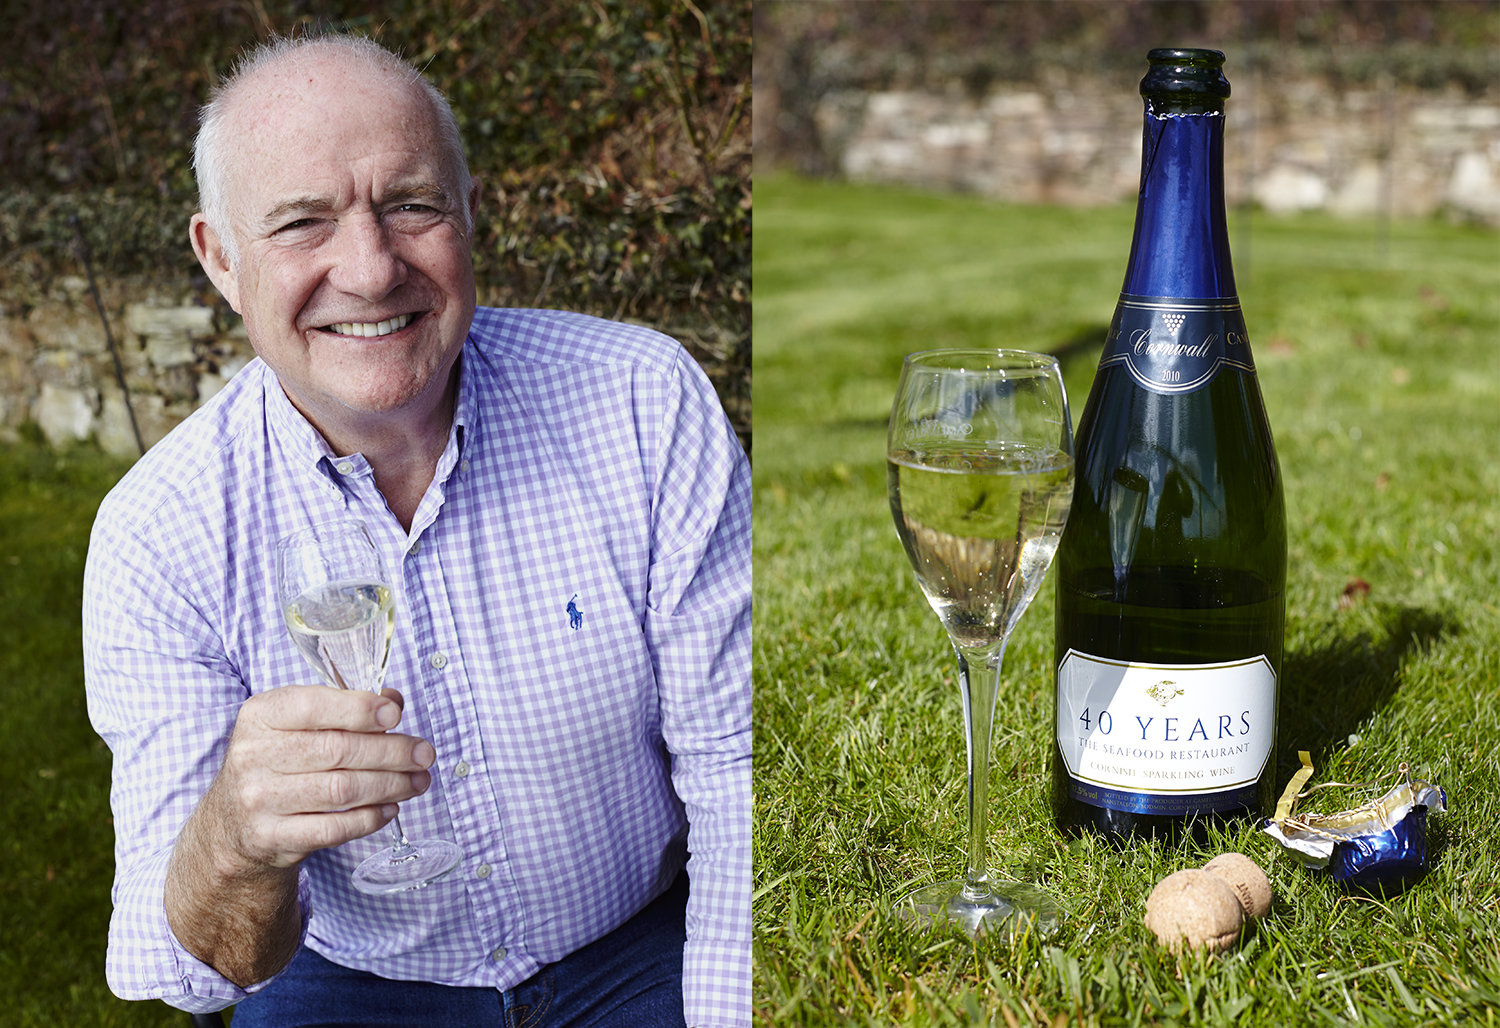 Rick Stein & The Seafood Restaurant 40th Anniversary feature in Delicious magazine - drink photography, white wine